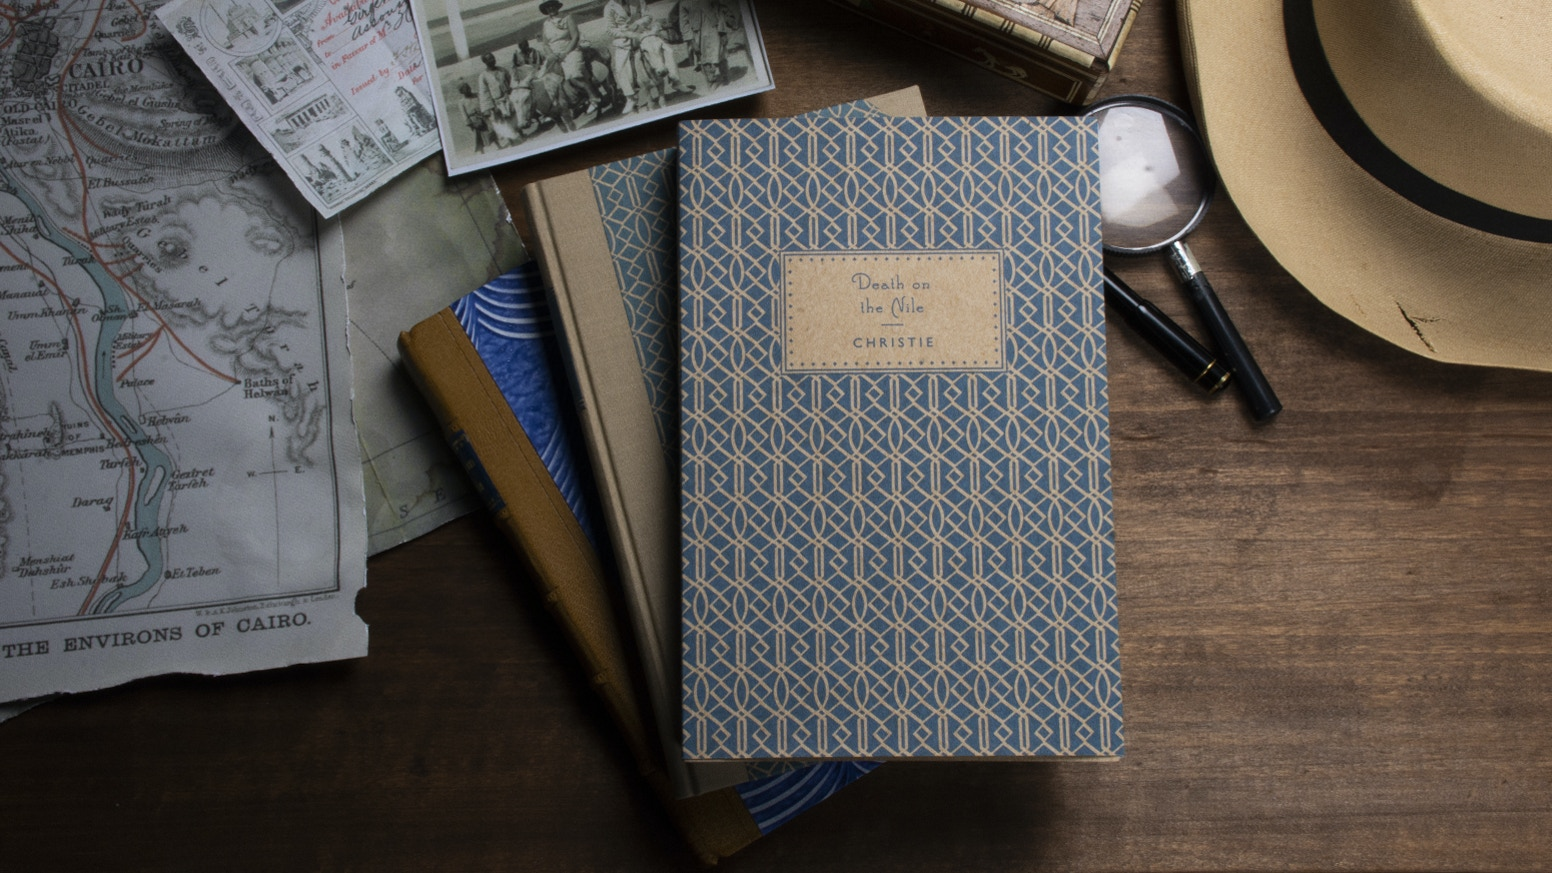 Letterpress printed and hand bound book celebrating one of Agatha Christie's most loved mysteries.